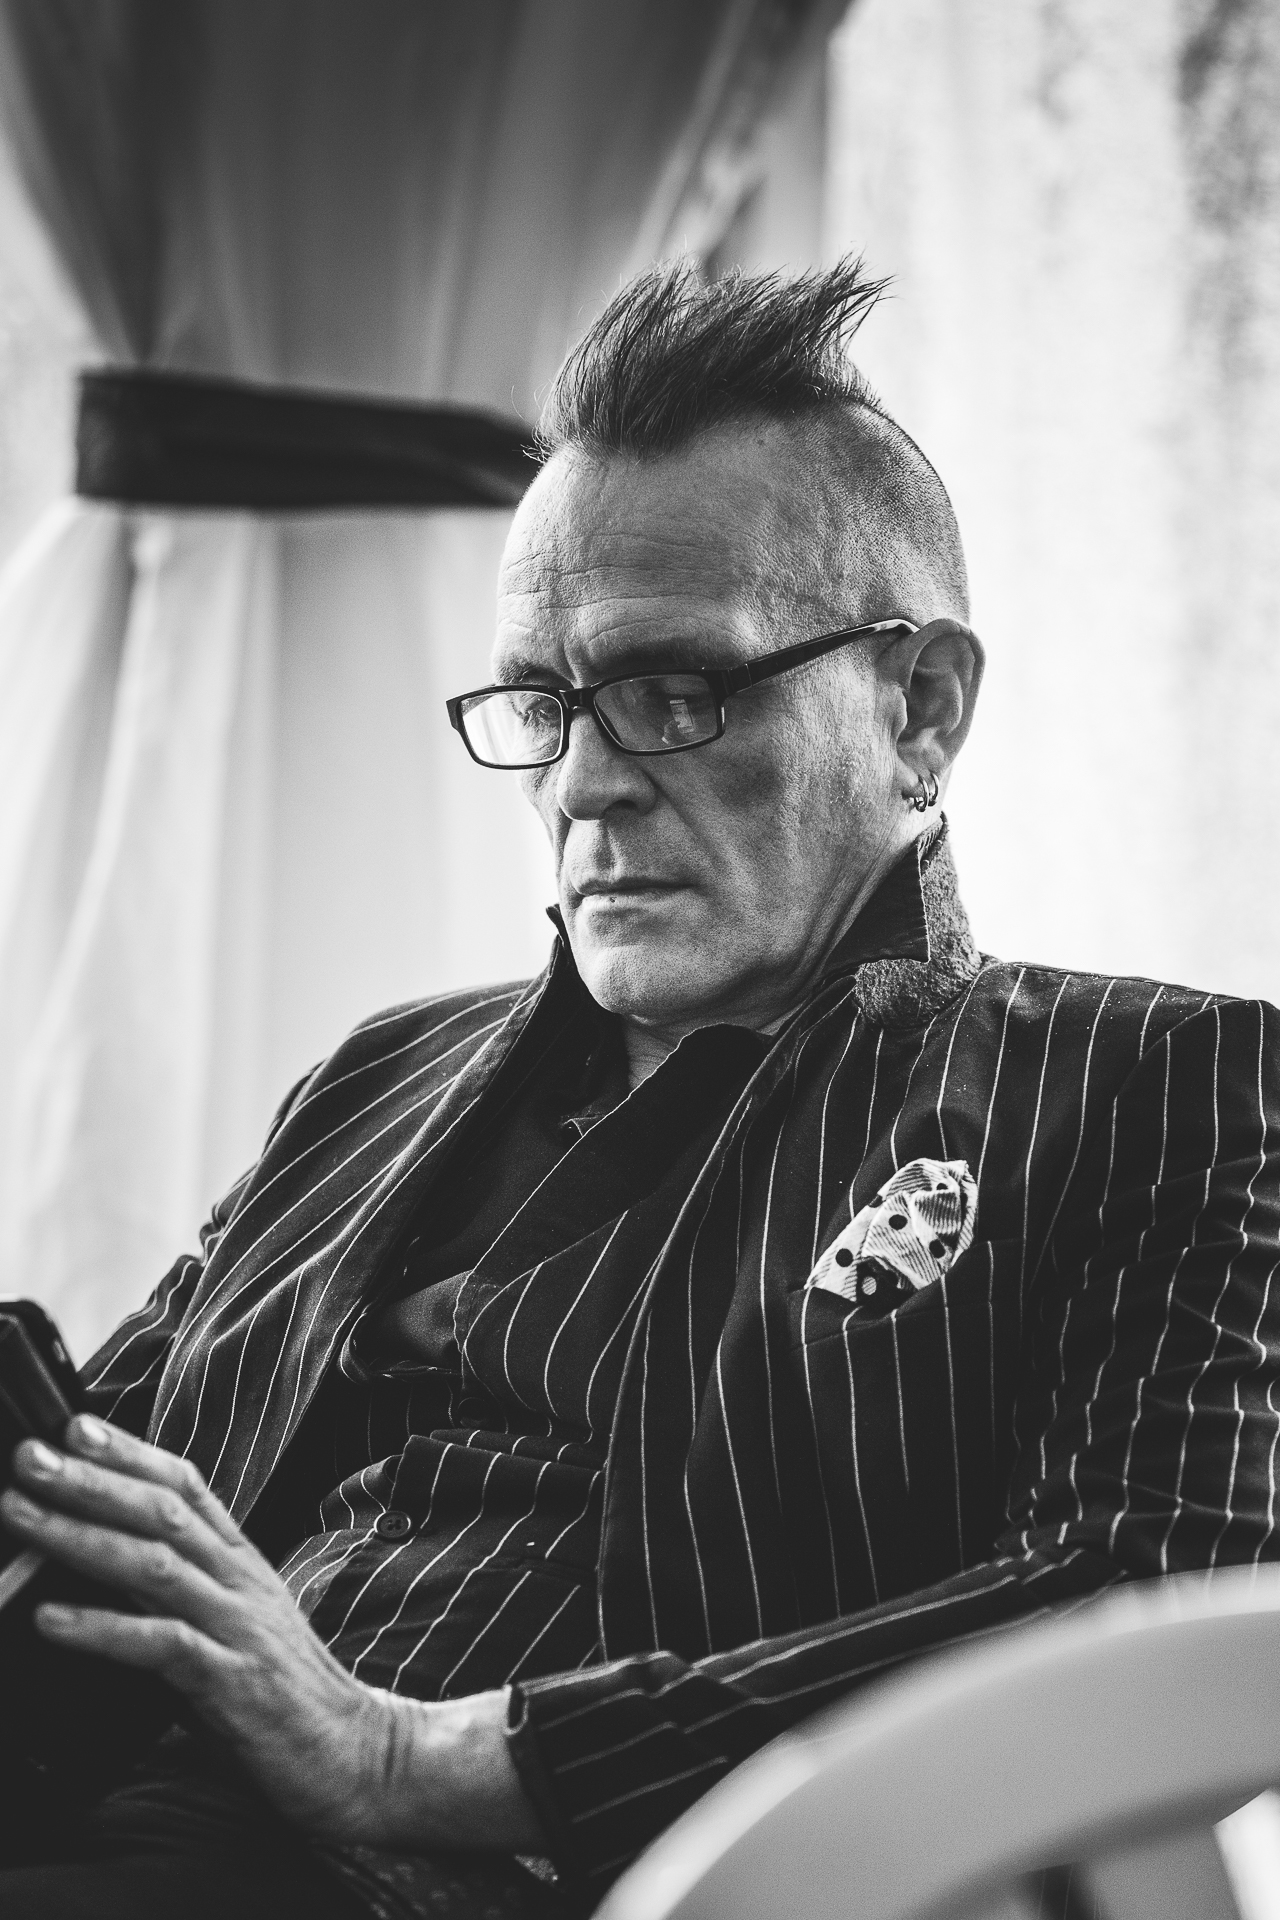 A B&W image of Mr John Robb of The Membranes sat backstage reading on his digital device whilst at Lakefest 2019.